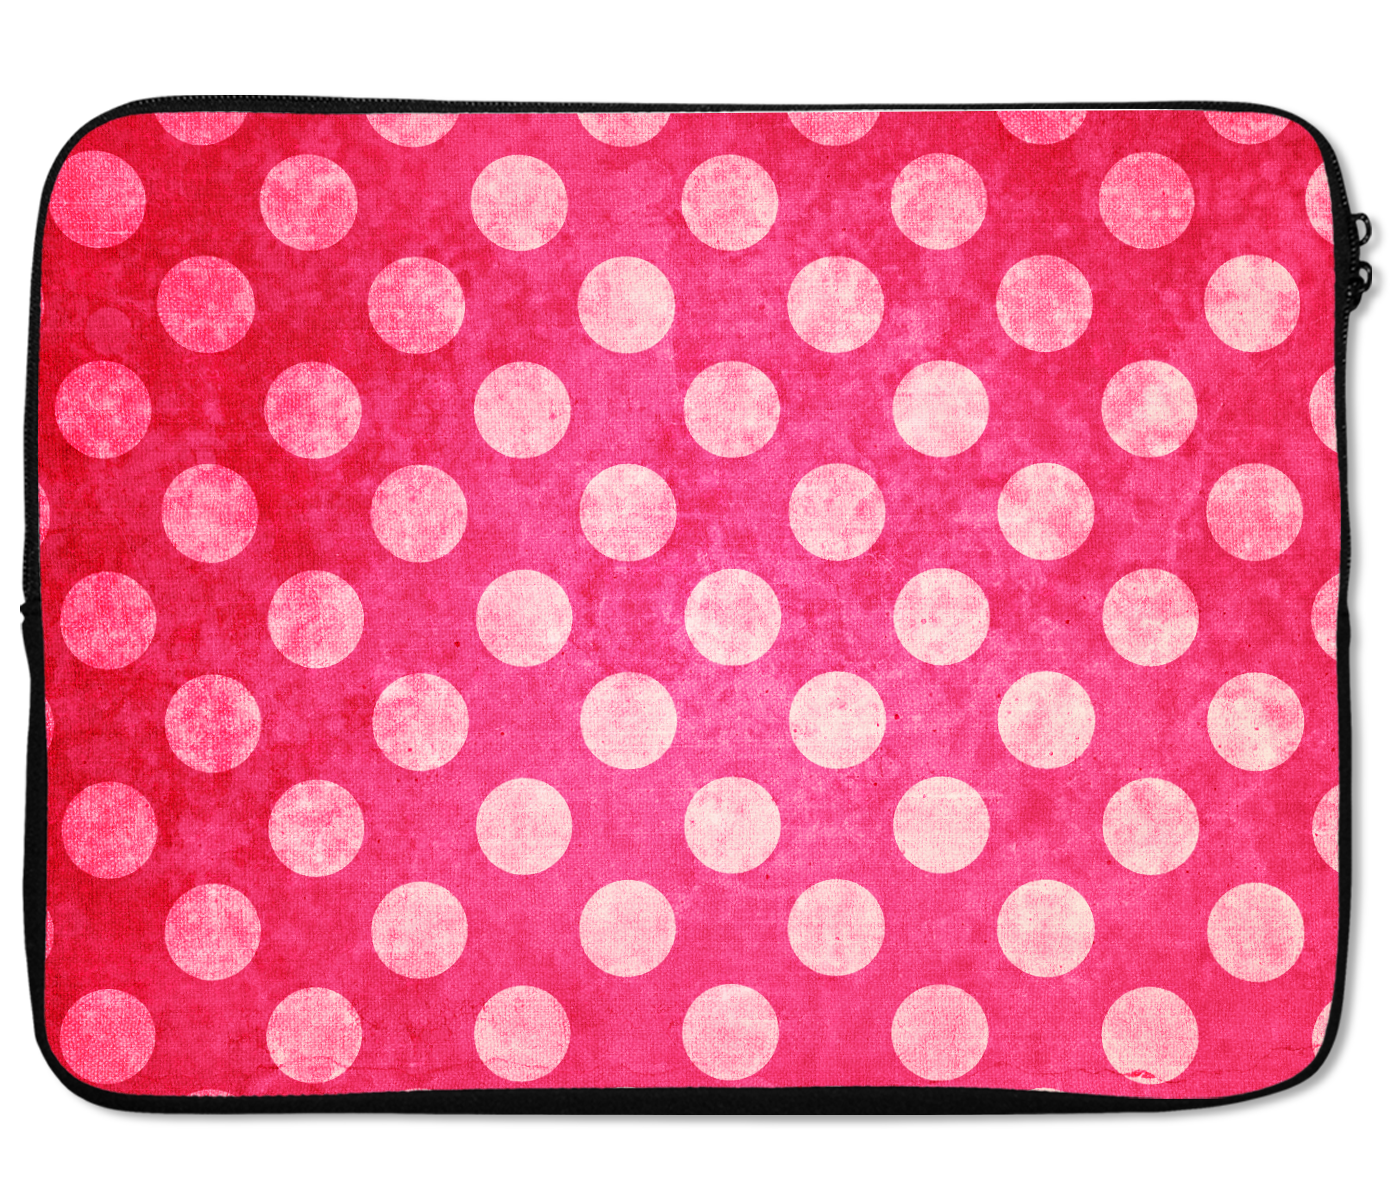 Laptops Tablet Sleeves Pretty Pink Fuchsia Polka Dot Pattern Premium Quality Neoprene Laptop Protection